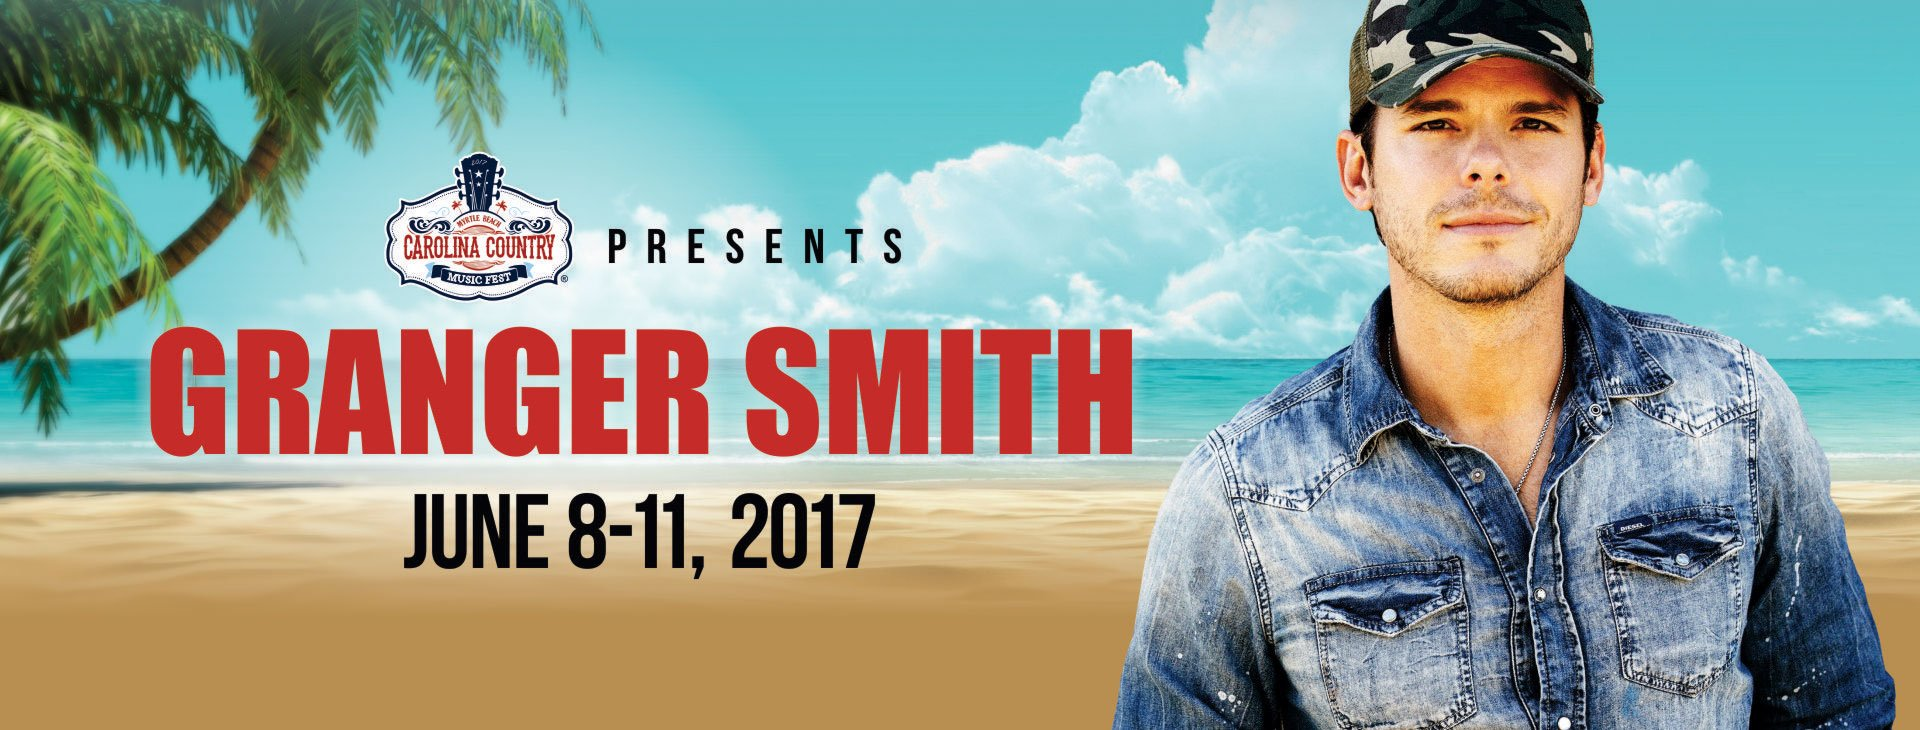 Granger Smith joins Carolina Country Music Fest!